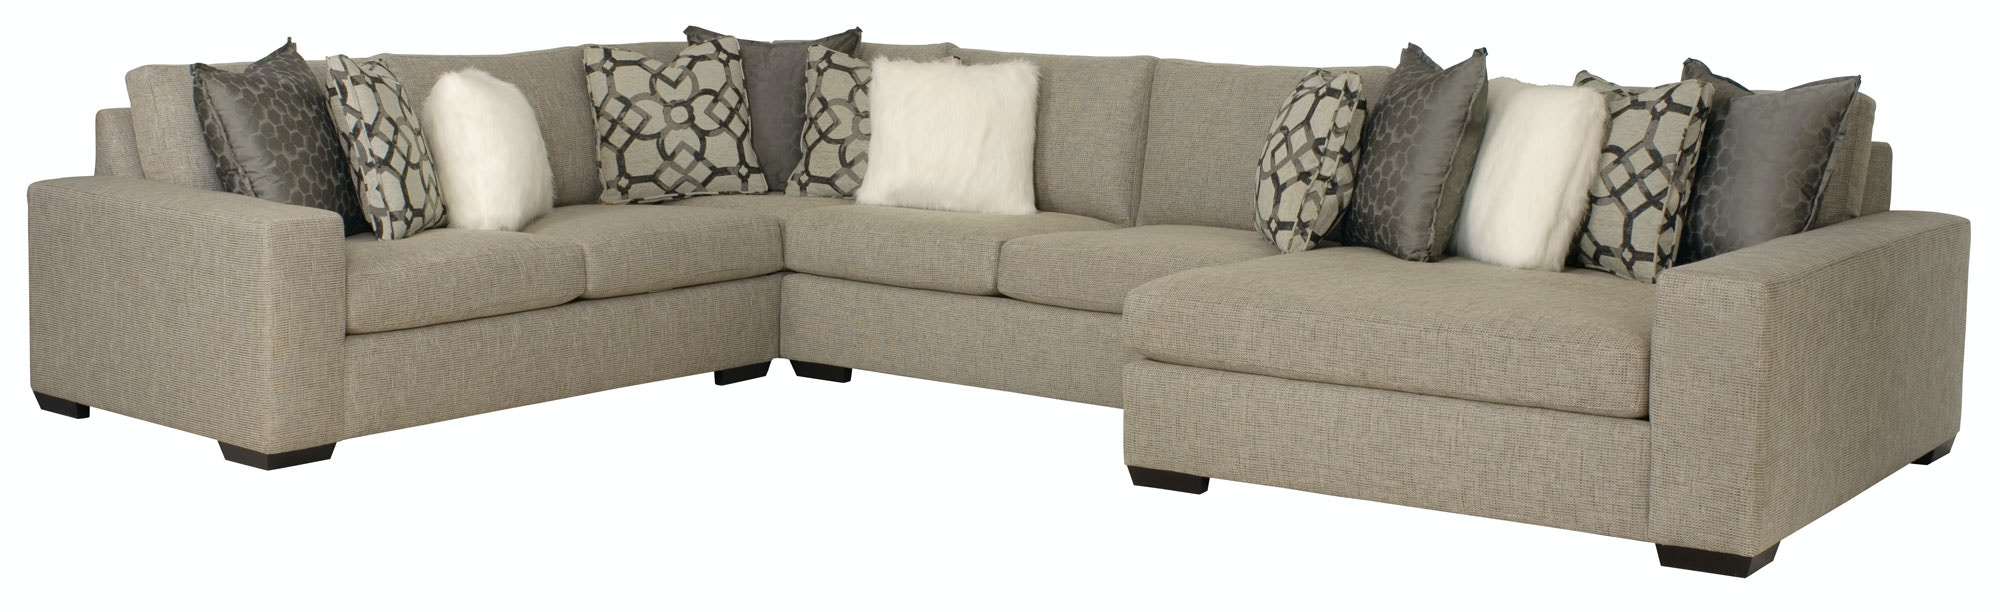 Bernhardt Furniture Orlando Sectional B6542, B6532, B6540, B6537